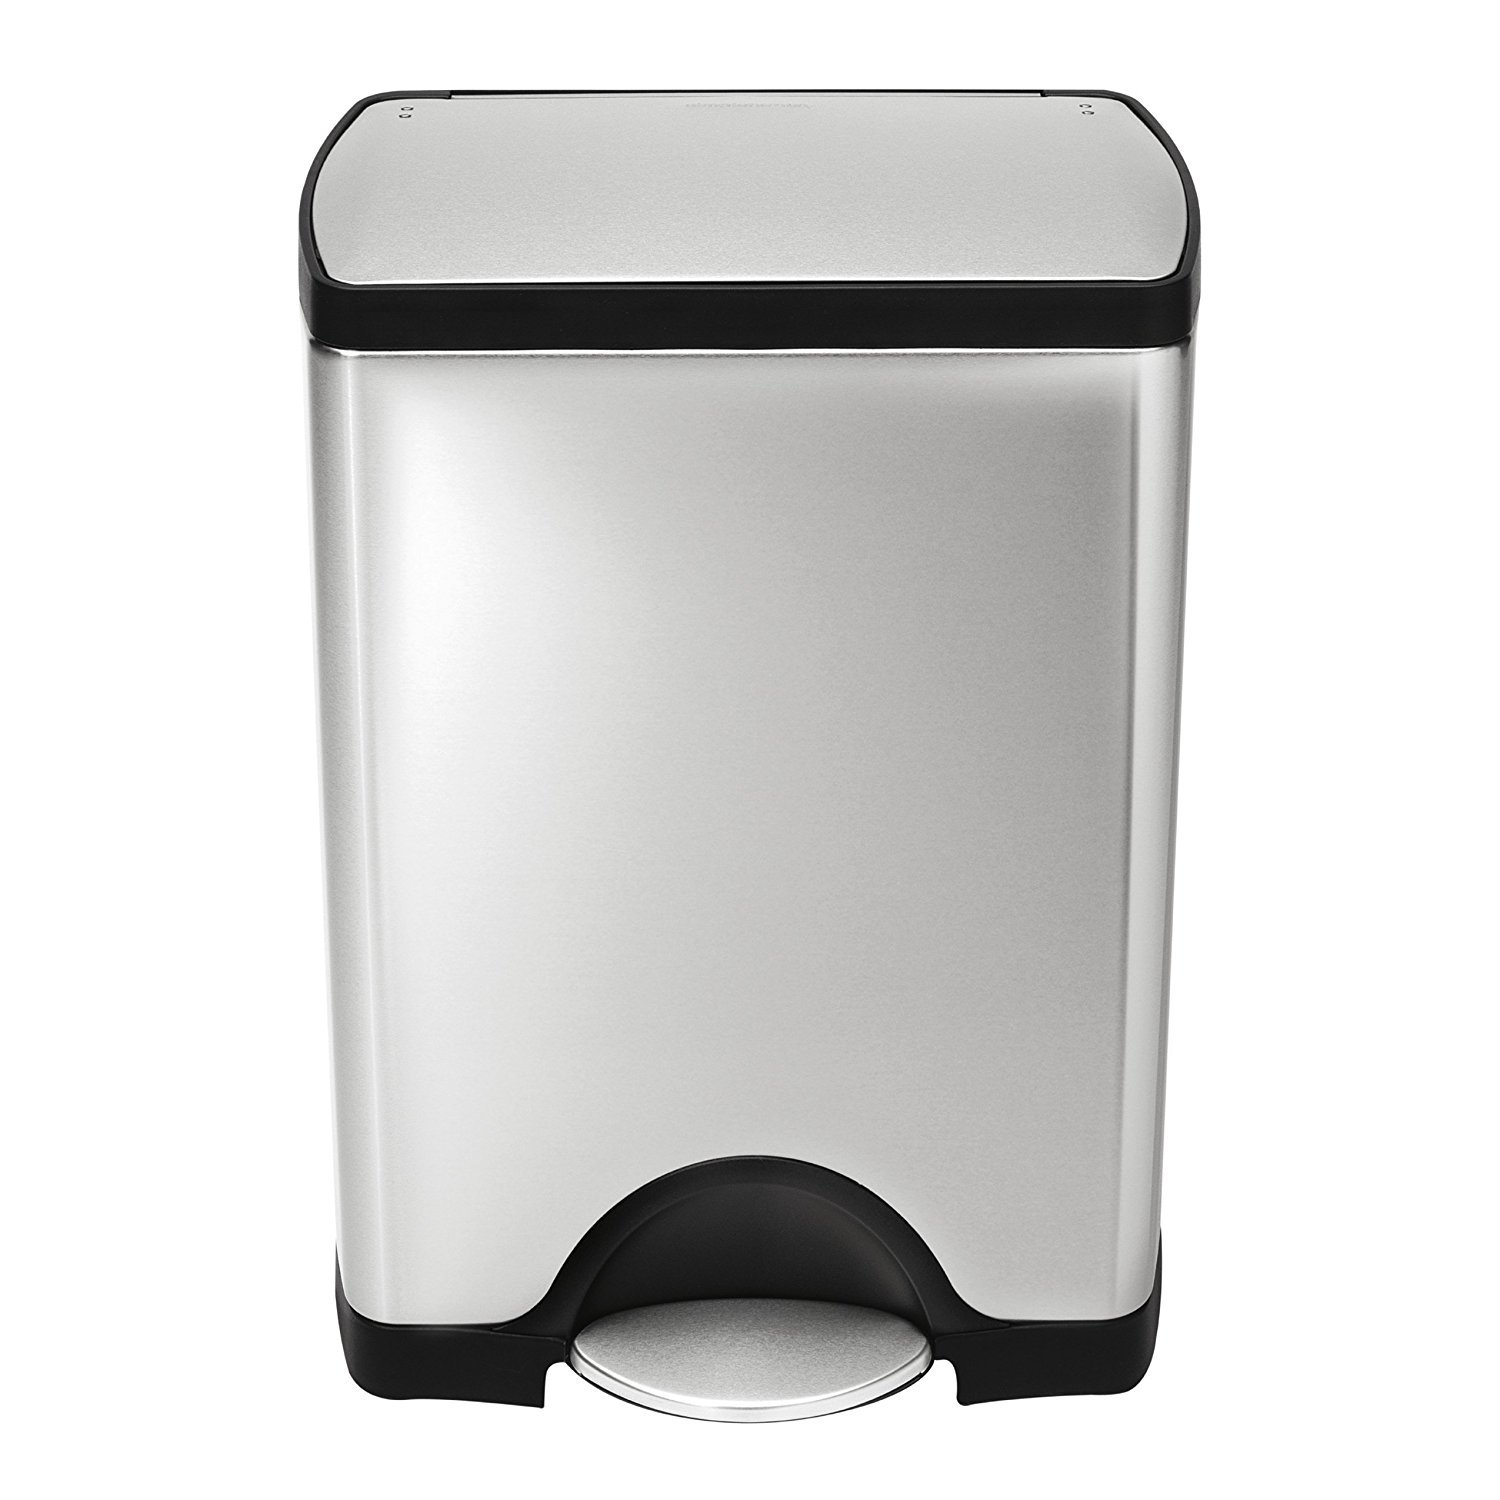 simplehuman Rectangular Step Trash Can, Fingerprint-Proof Brushed Stainless Steel, 30 Liters /8 Gallons Simplehuman CAD CW1884